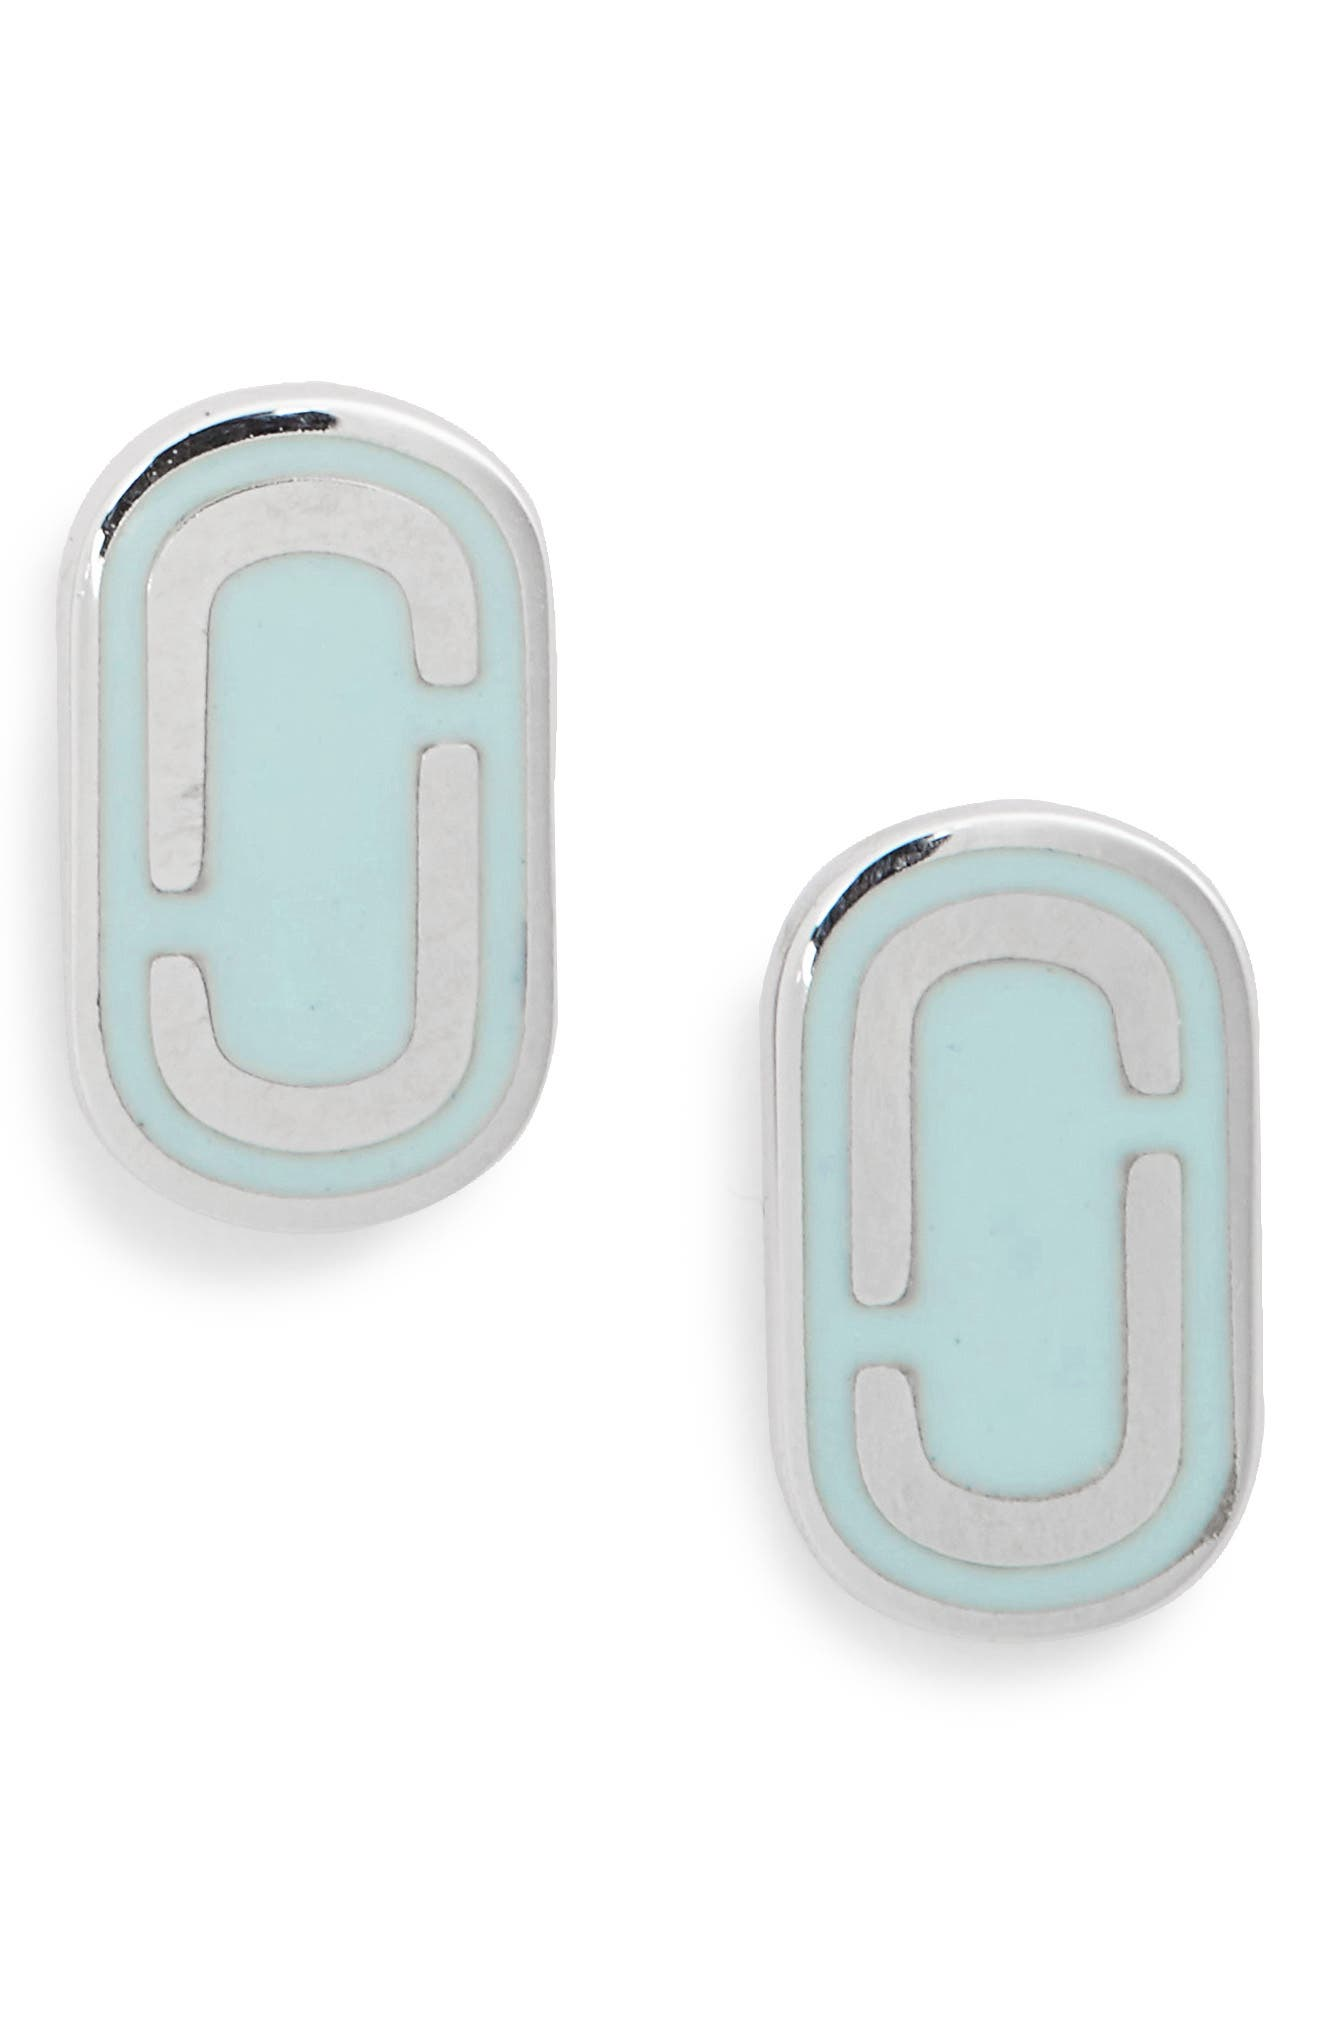 Icon Enamel Stud Earrings,                             Main thumbnail 2, color,